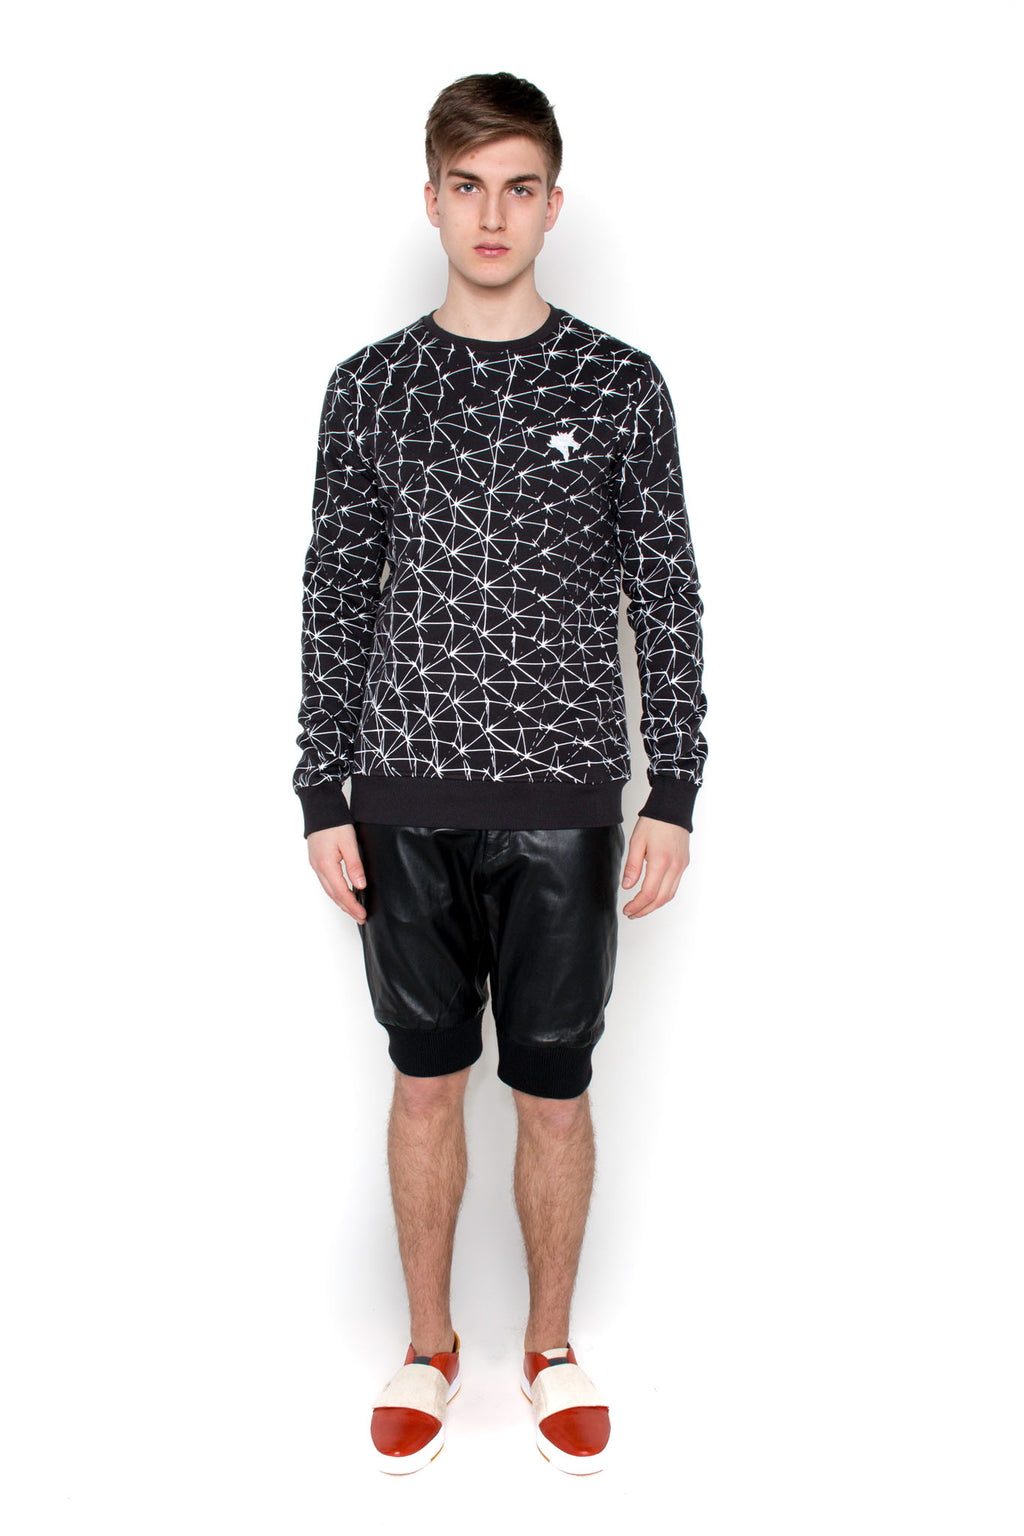 Biosphere Sweatshirt (black-white)